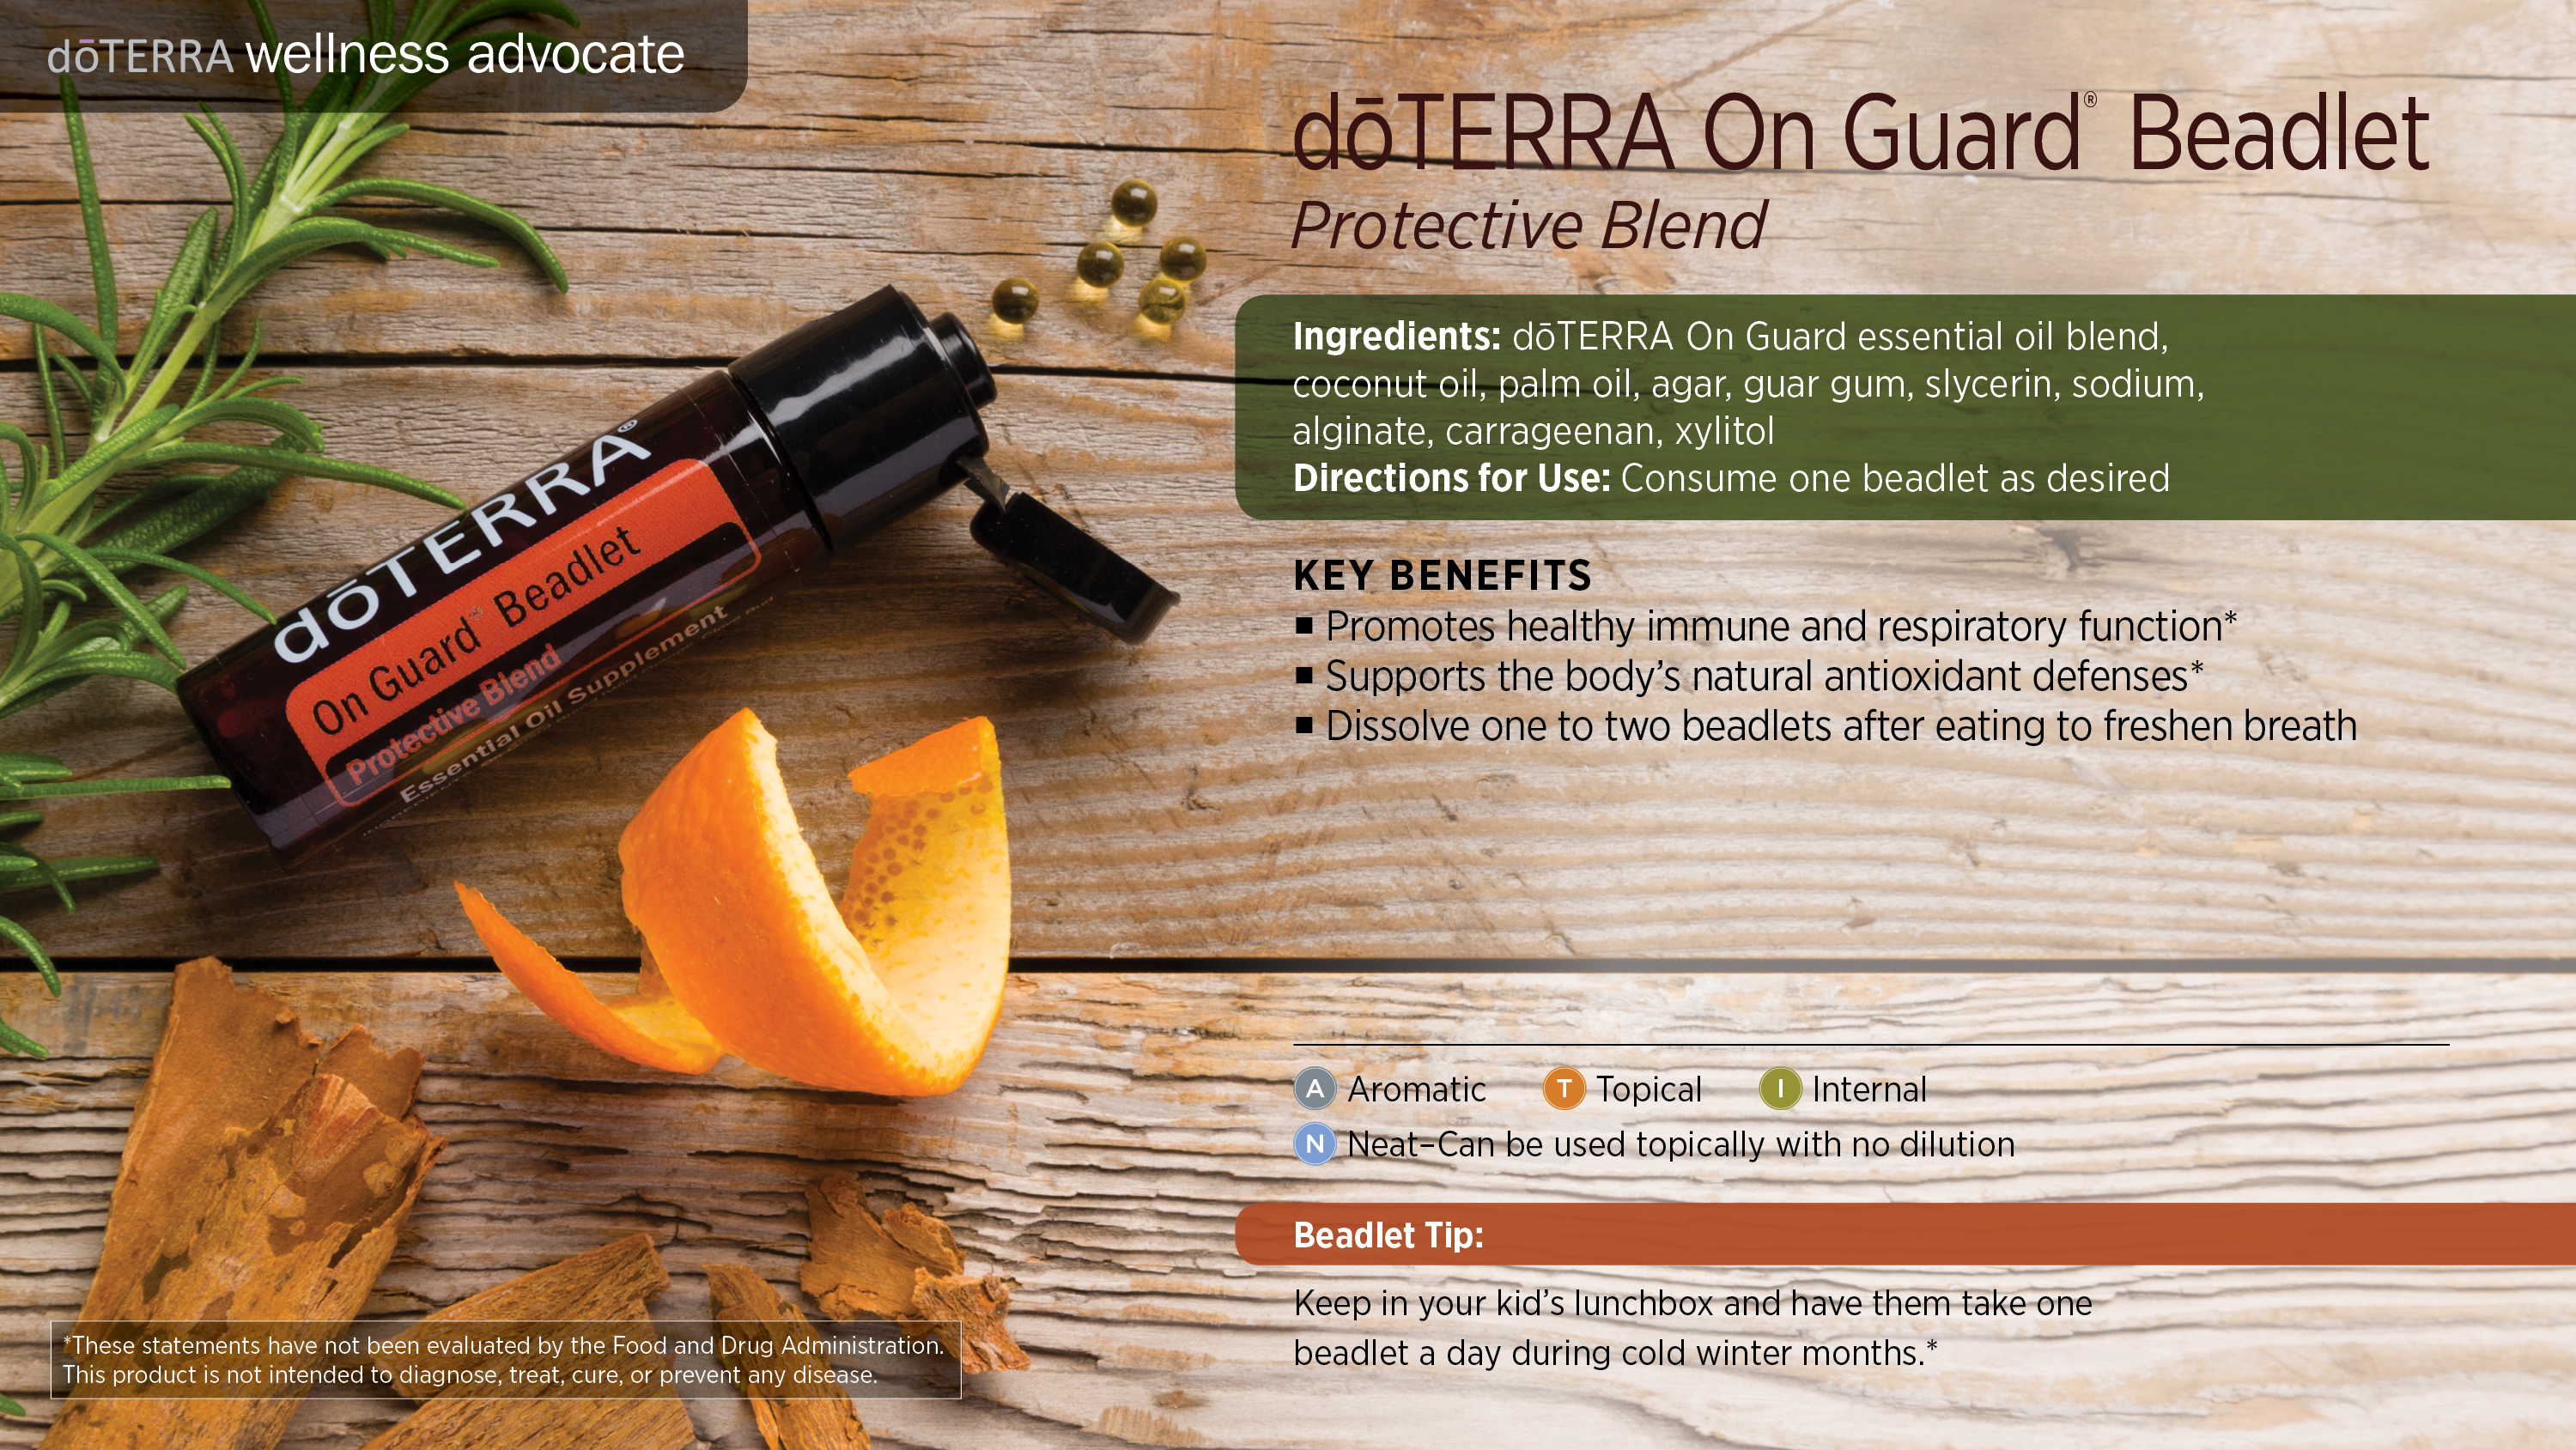 Doterra On Guard Beadlets Dterra Essential Oils